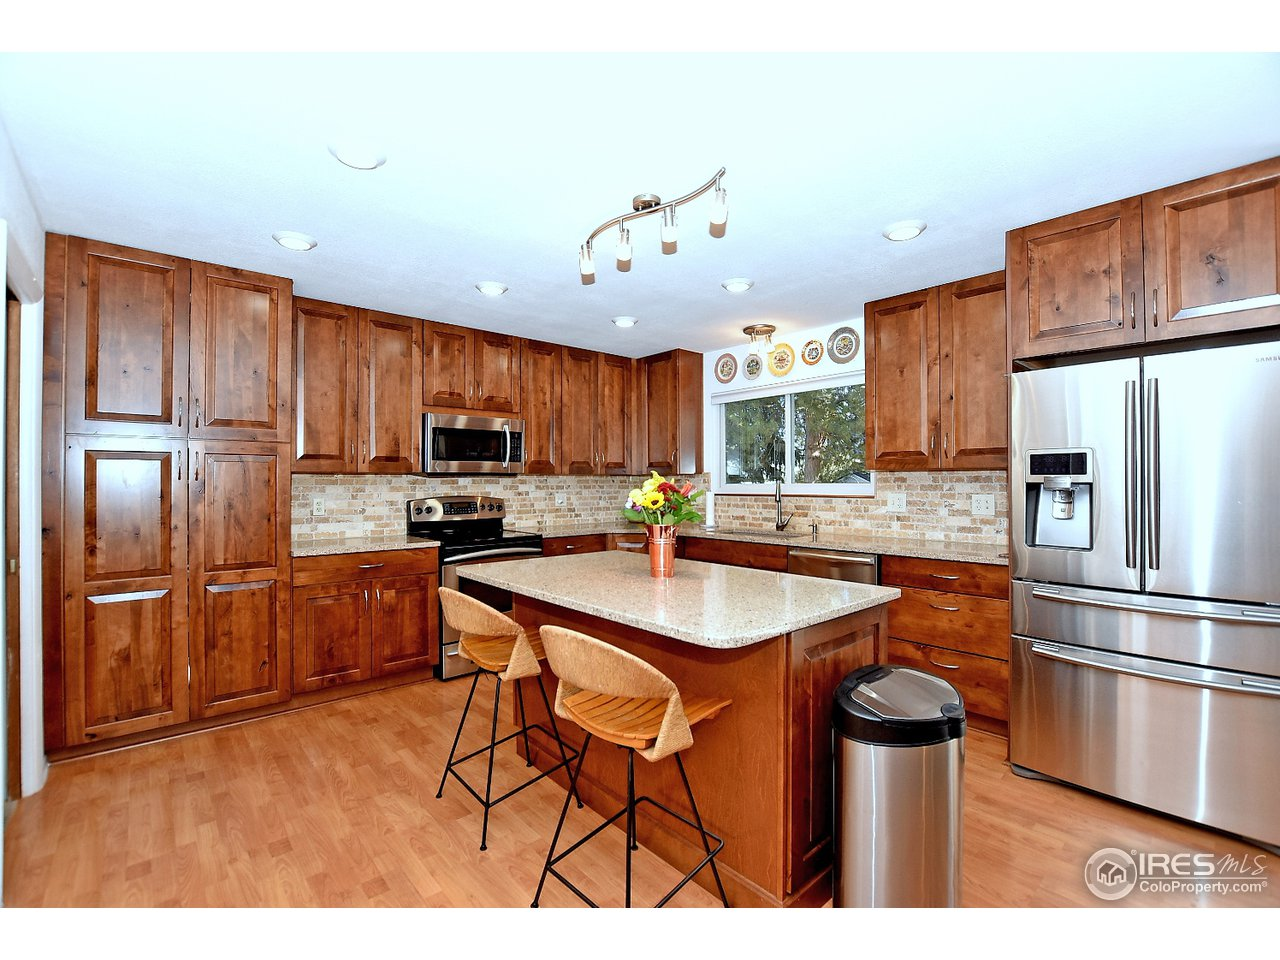 Totally remodeled kitchen with quartz and alder